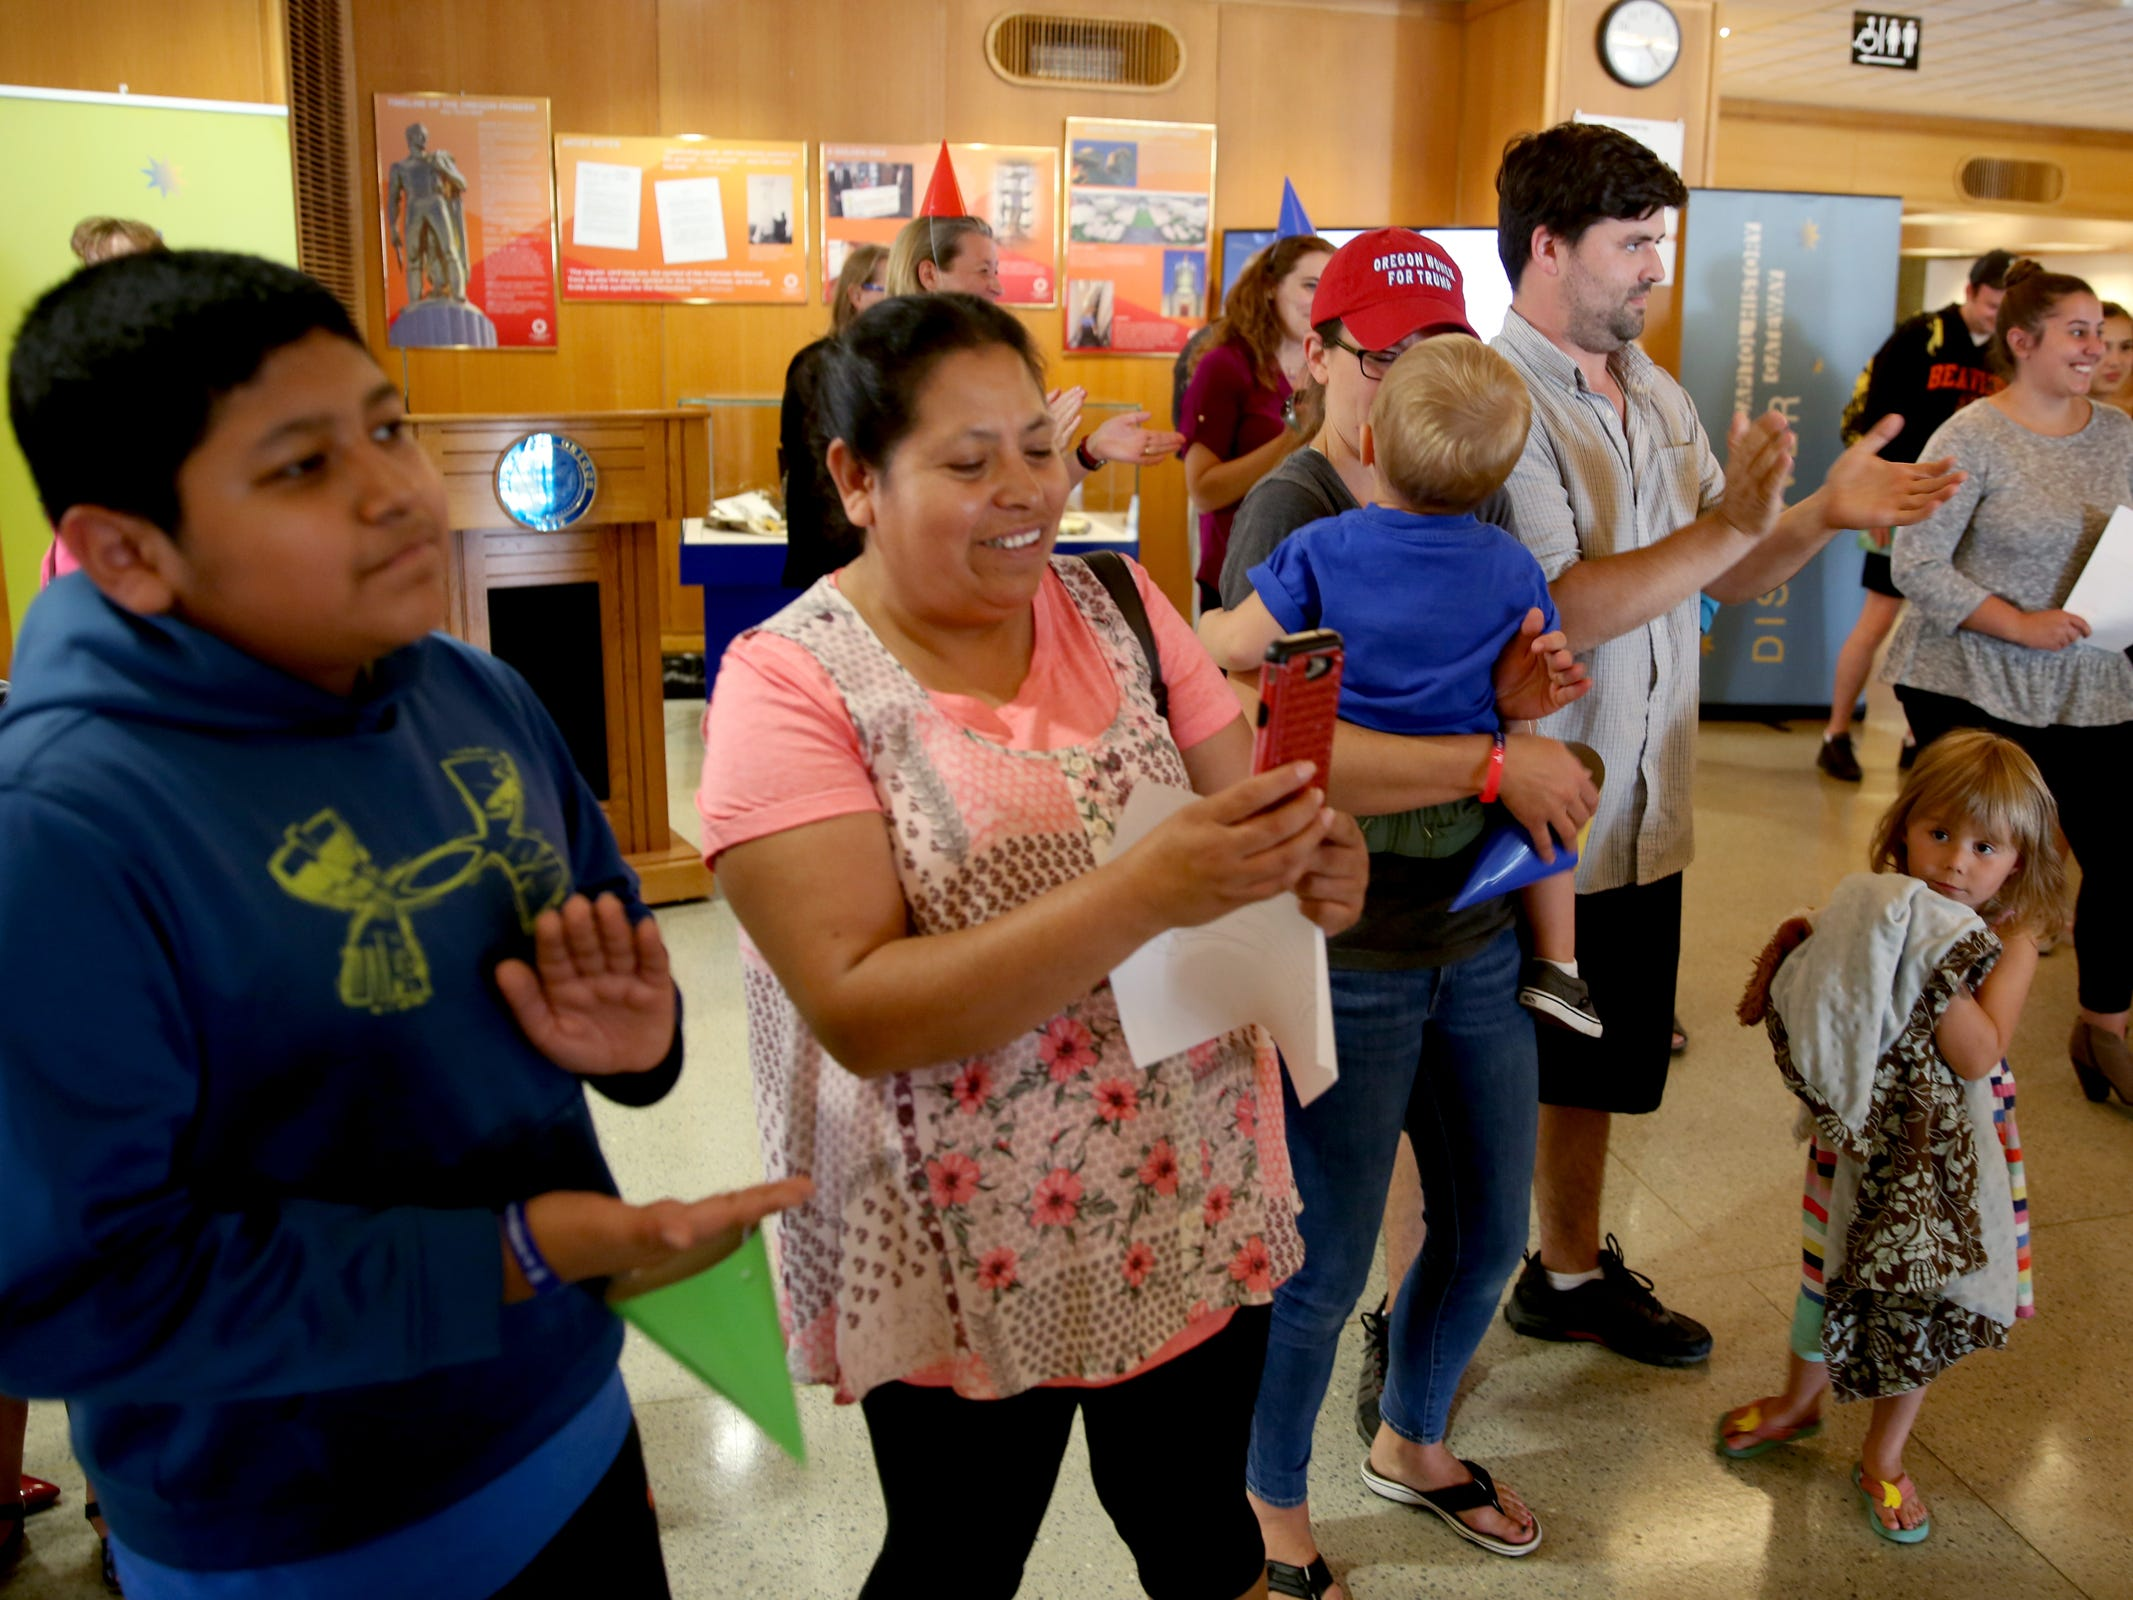 Julian Barrera, far left, 12, and his mom, Alicia Sagerro, of Salem, sings Happy Birthday during an 80th birthday party for the Oregon Pioneer, aka the Gold Man, at the Oregon State Capitol in Salem on Tuesday, Sep. 18, 2018.